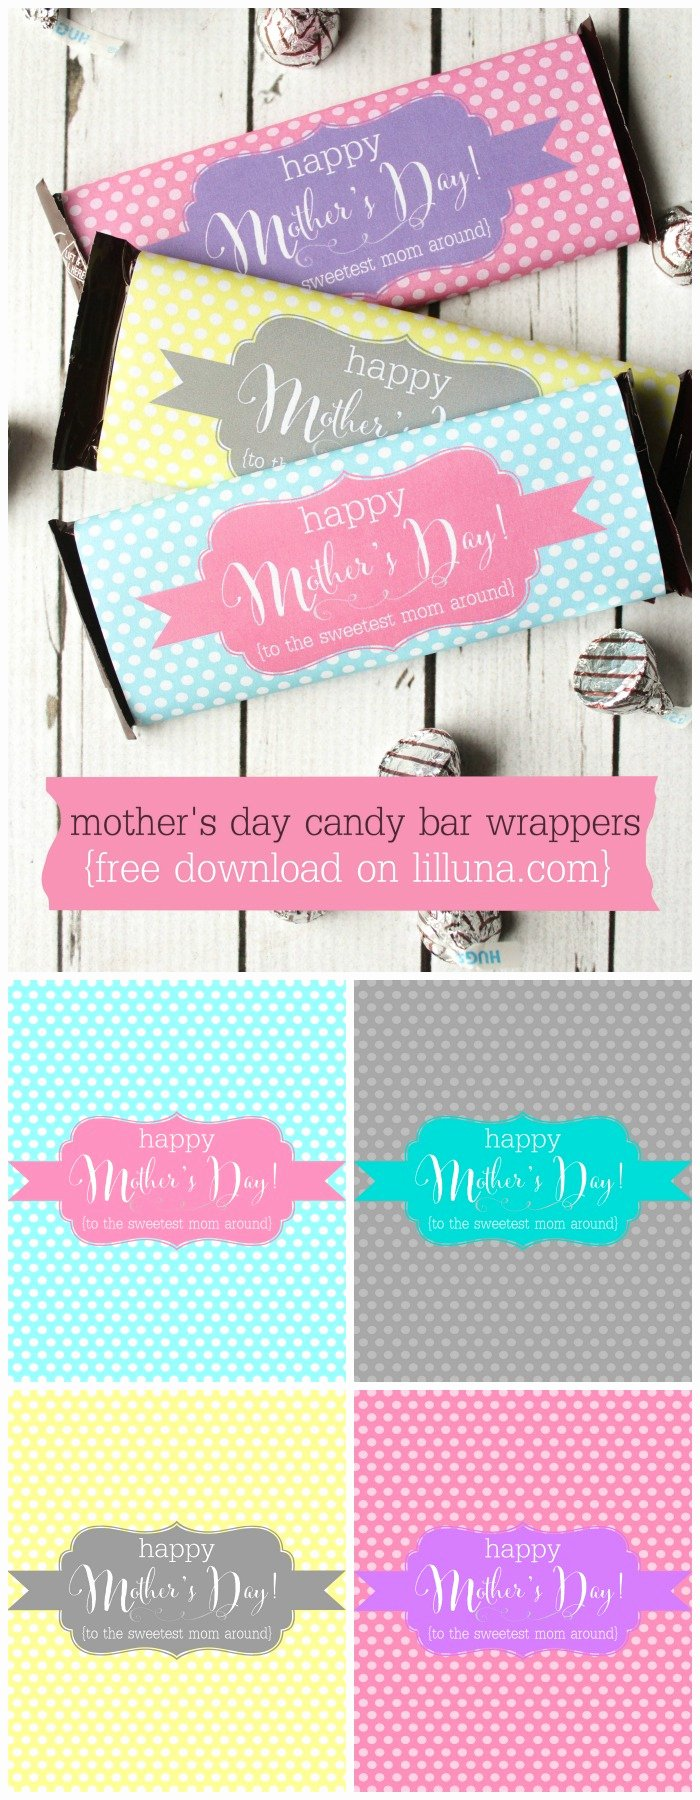 Free Candy Bar Wrappers Luxury Mother S Day Candy Bar Wrappers